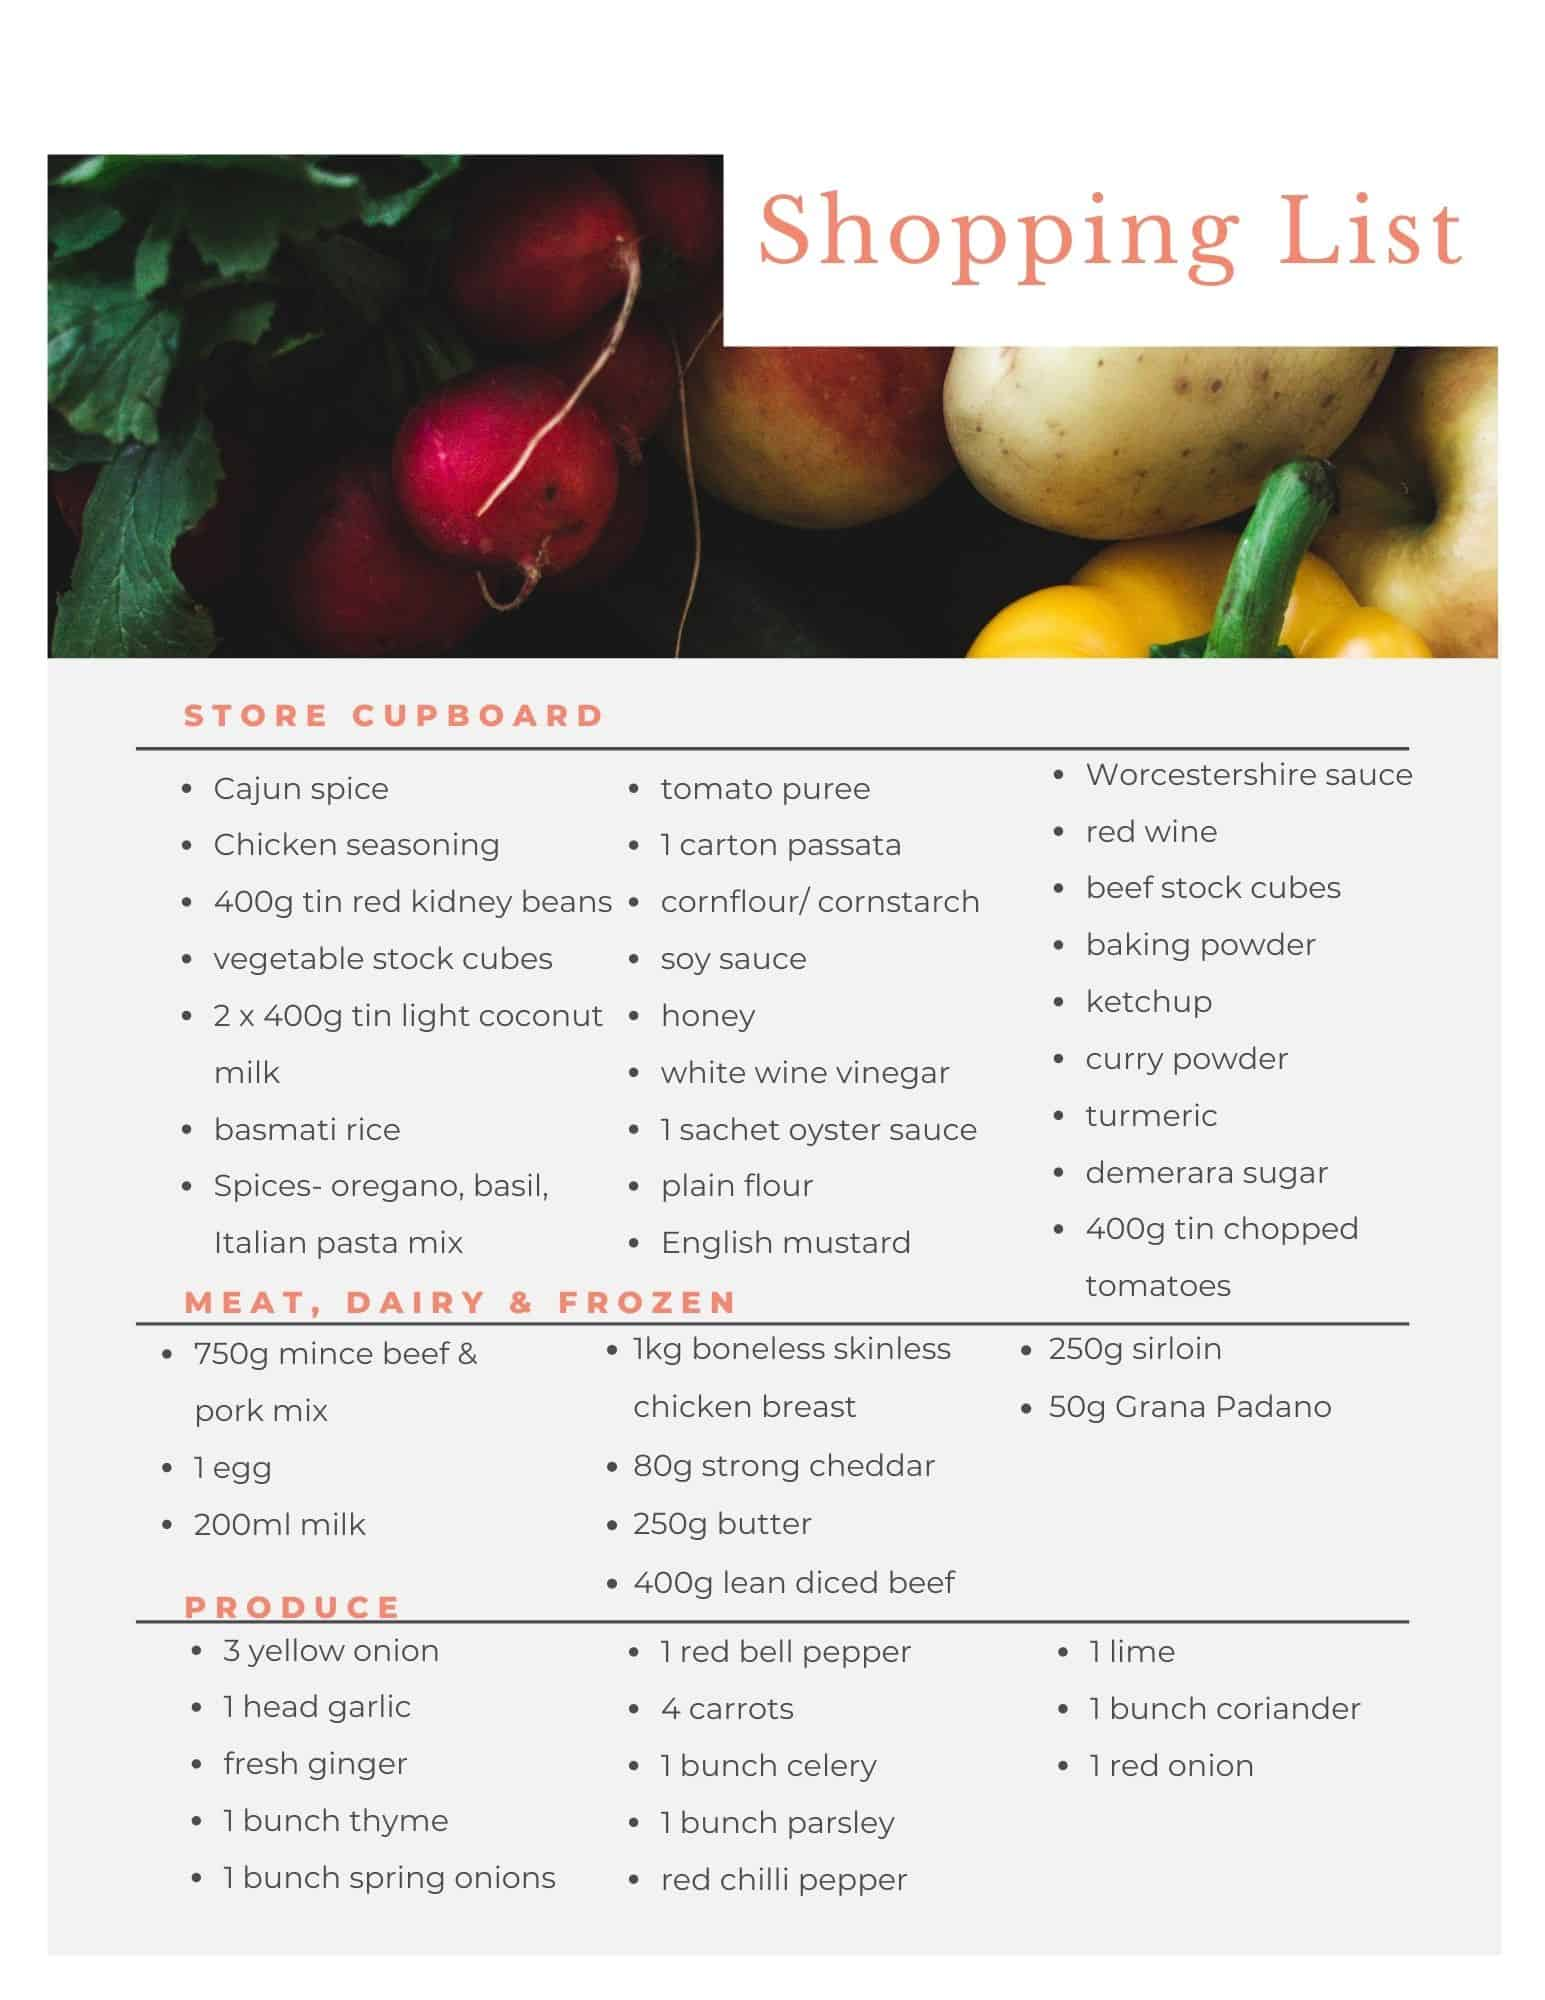 Shopping list for the Aldi budget meal plan.